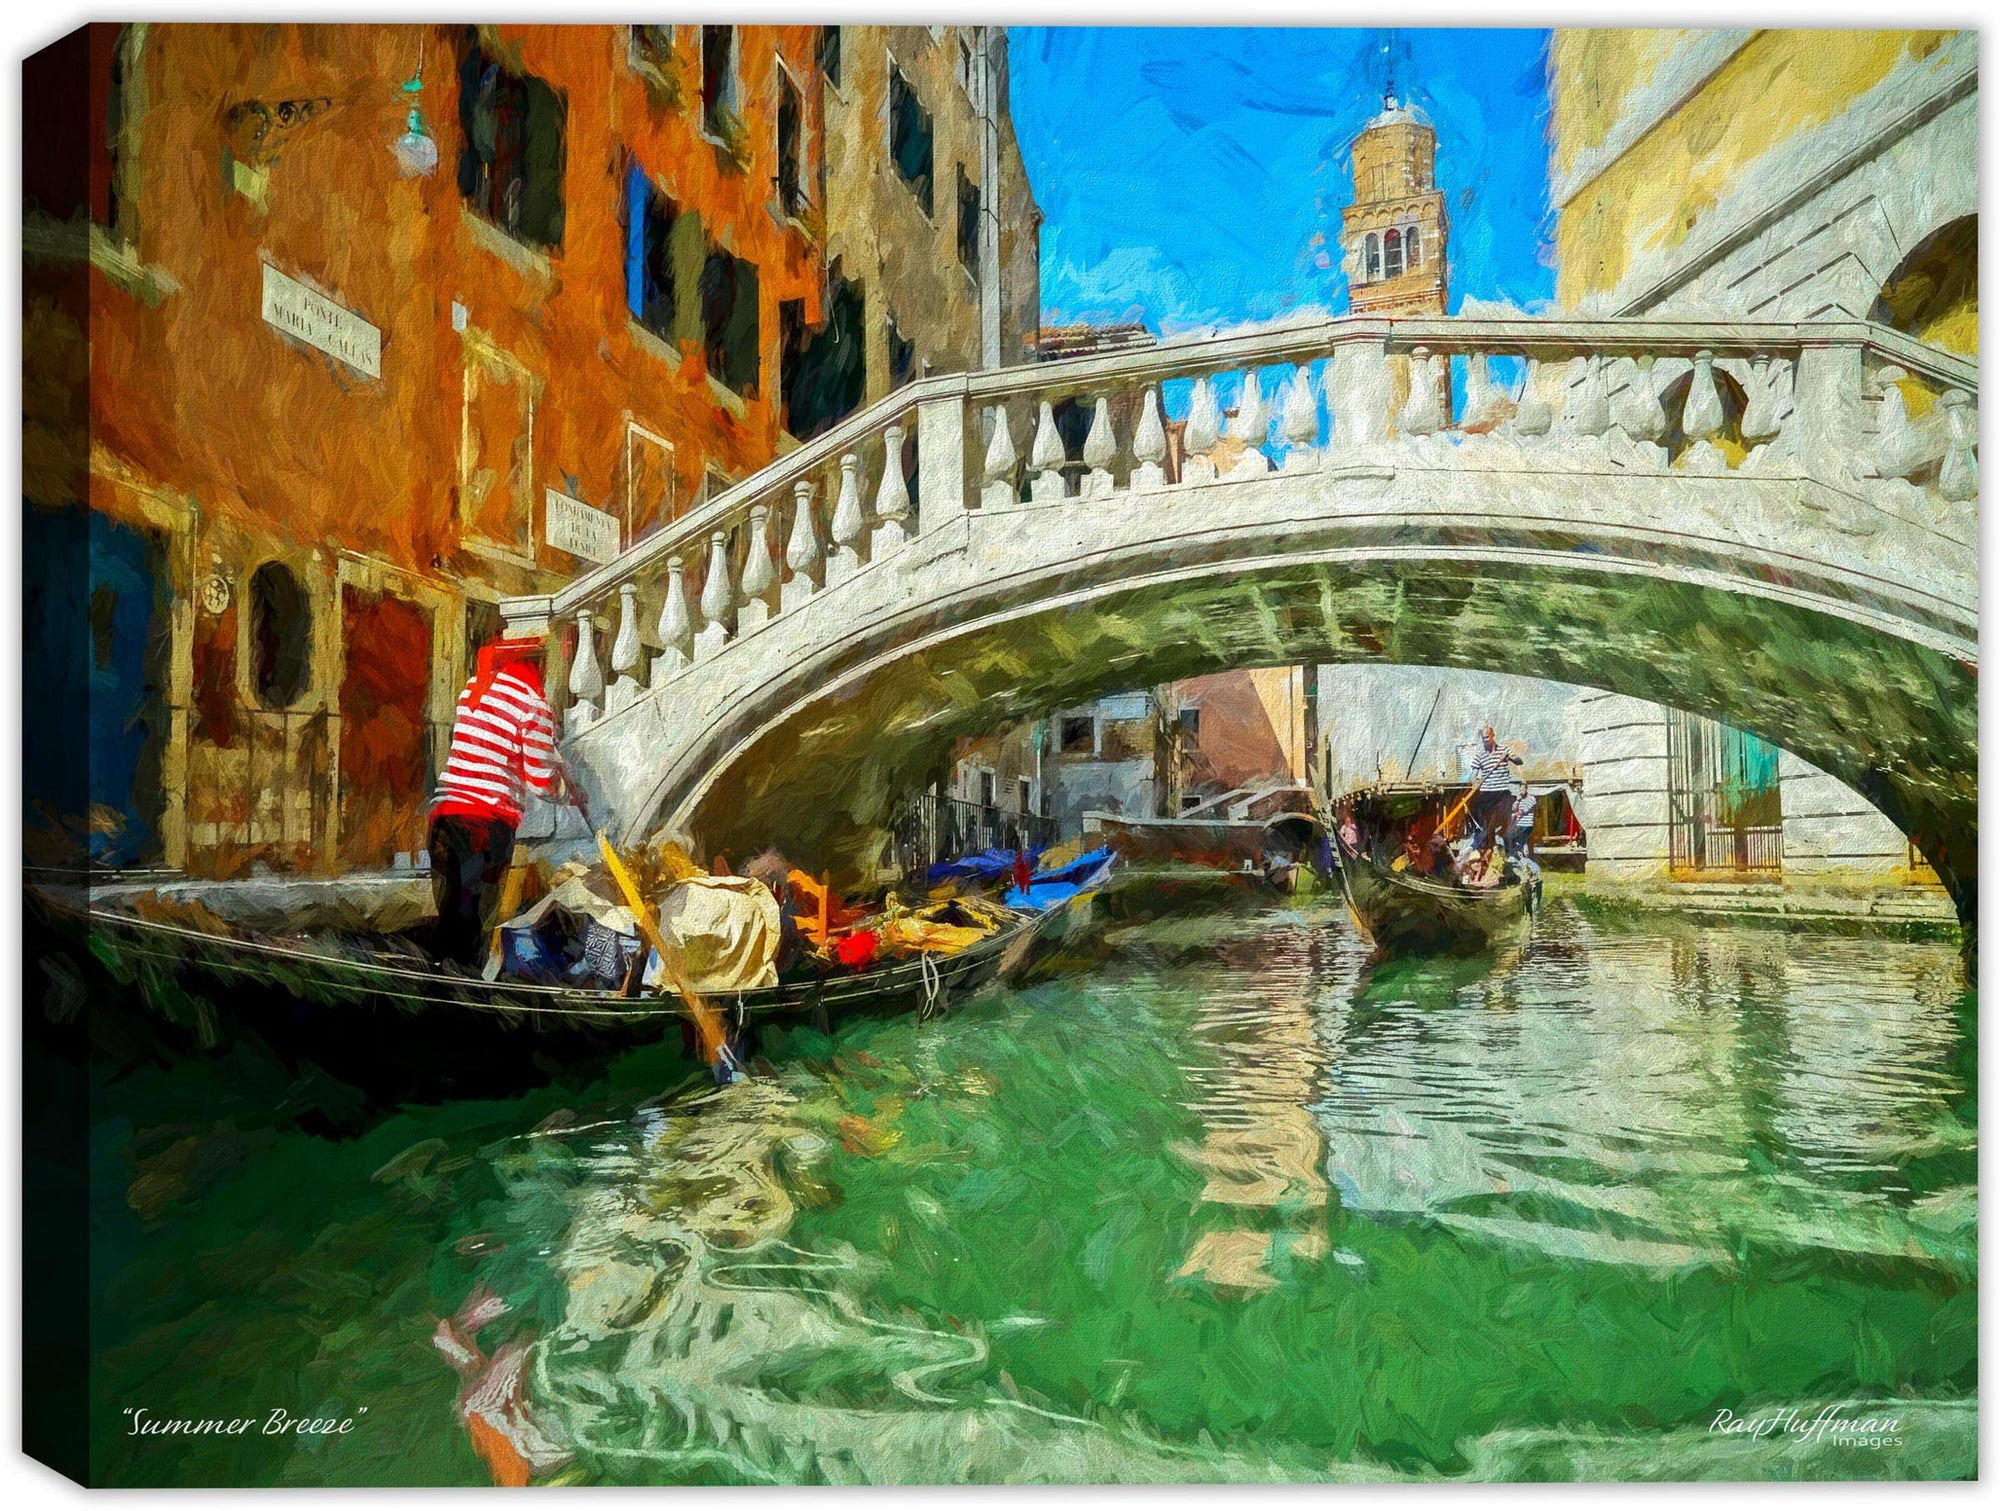 Summer Breeze in Venice - Painted on Canvas